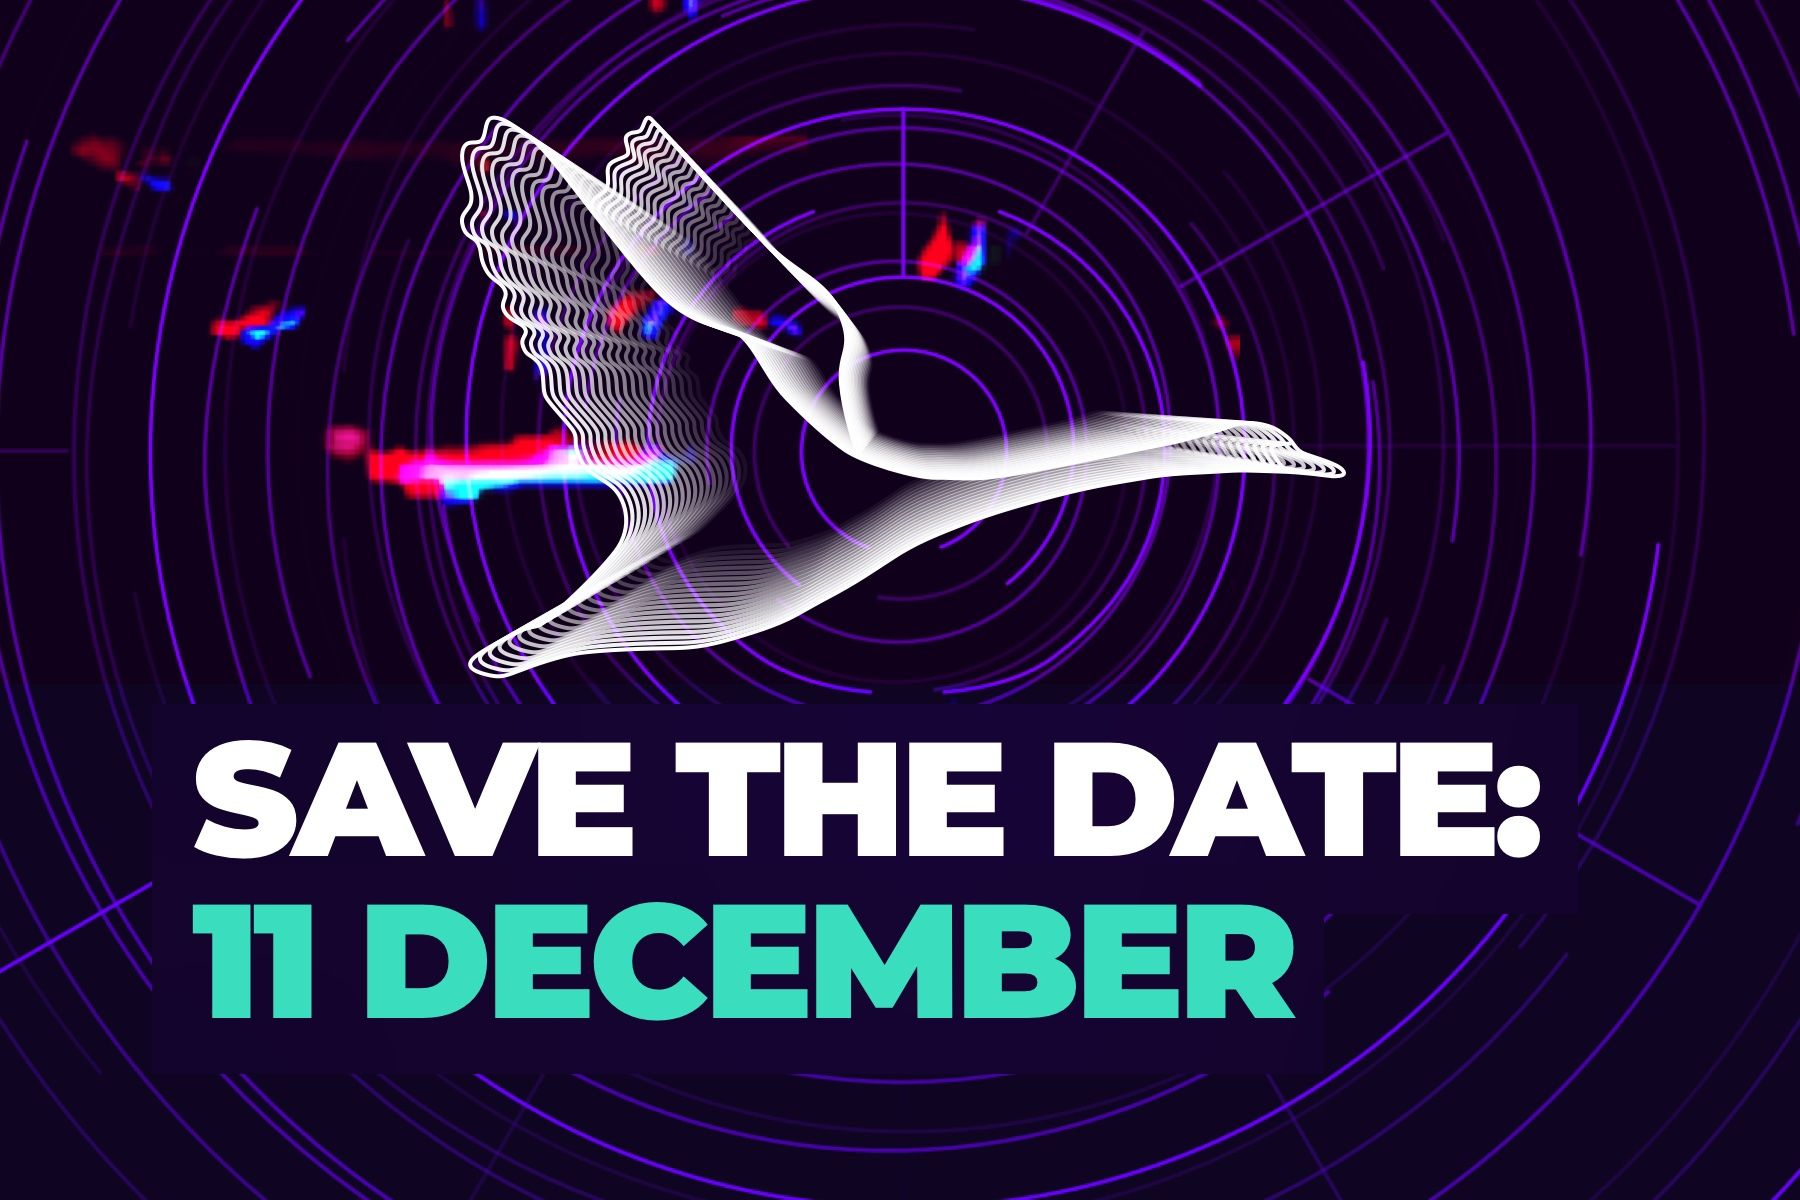 Save the date: 11 December, a major event for the CND ecosystem